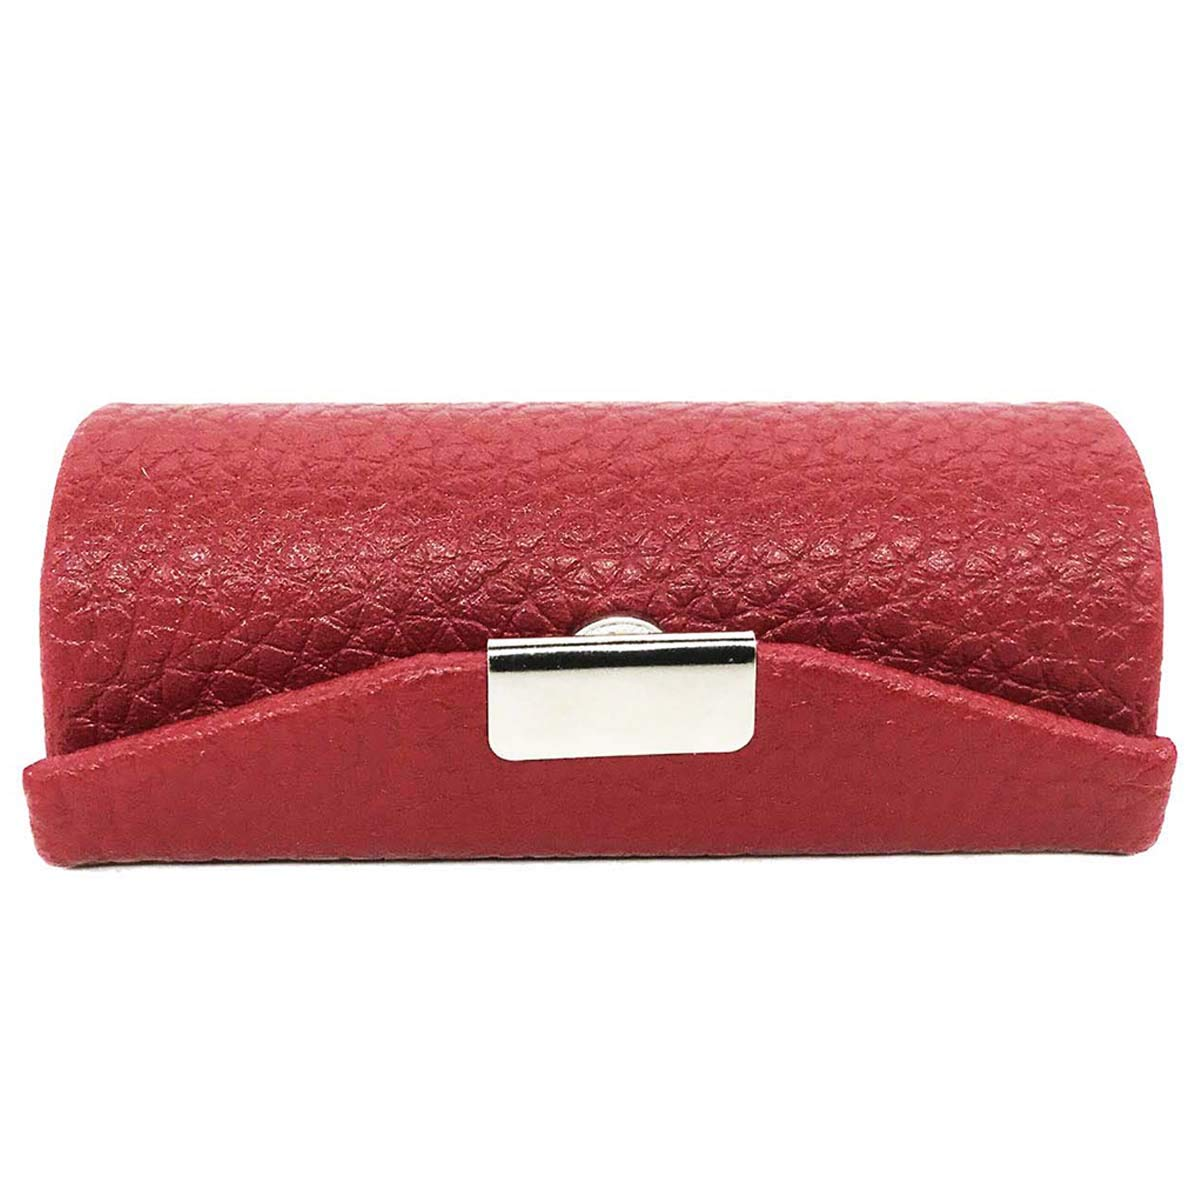 Leather Small Lipstick Case Holder with Mirror Organizer Bag for Purse Lipstick Holder,Cosmetic Storages for...